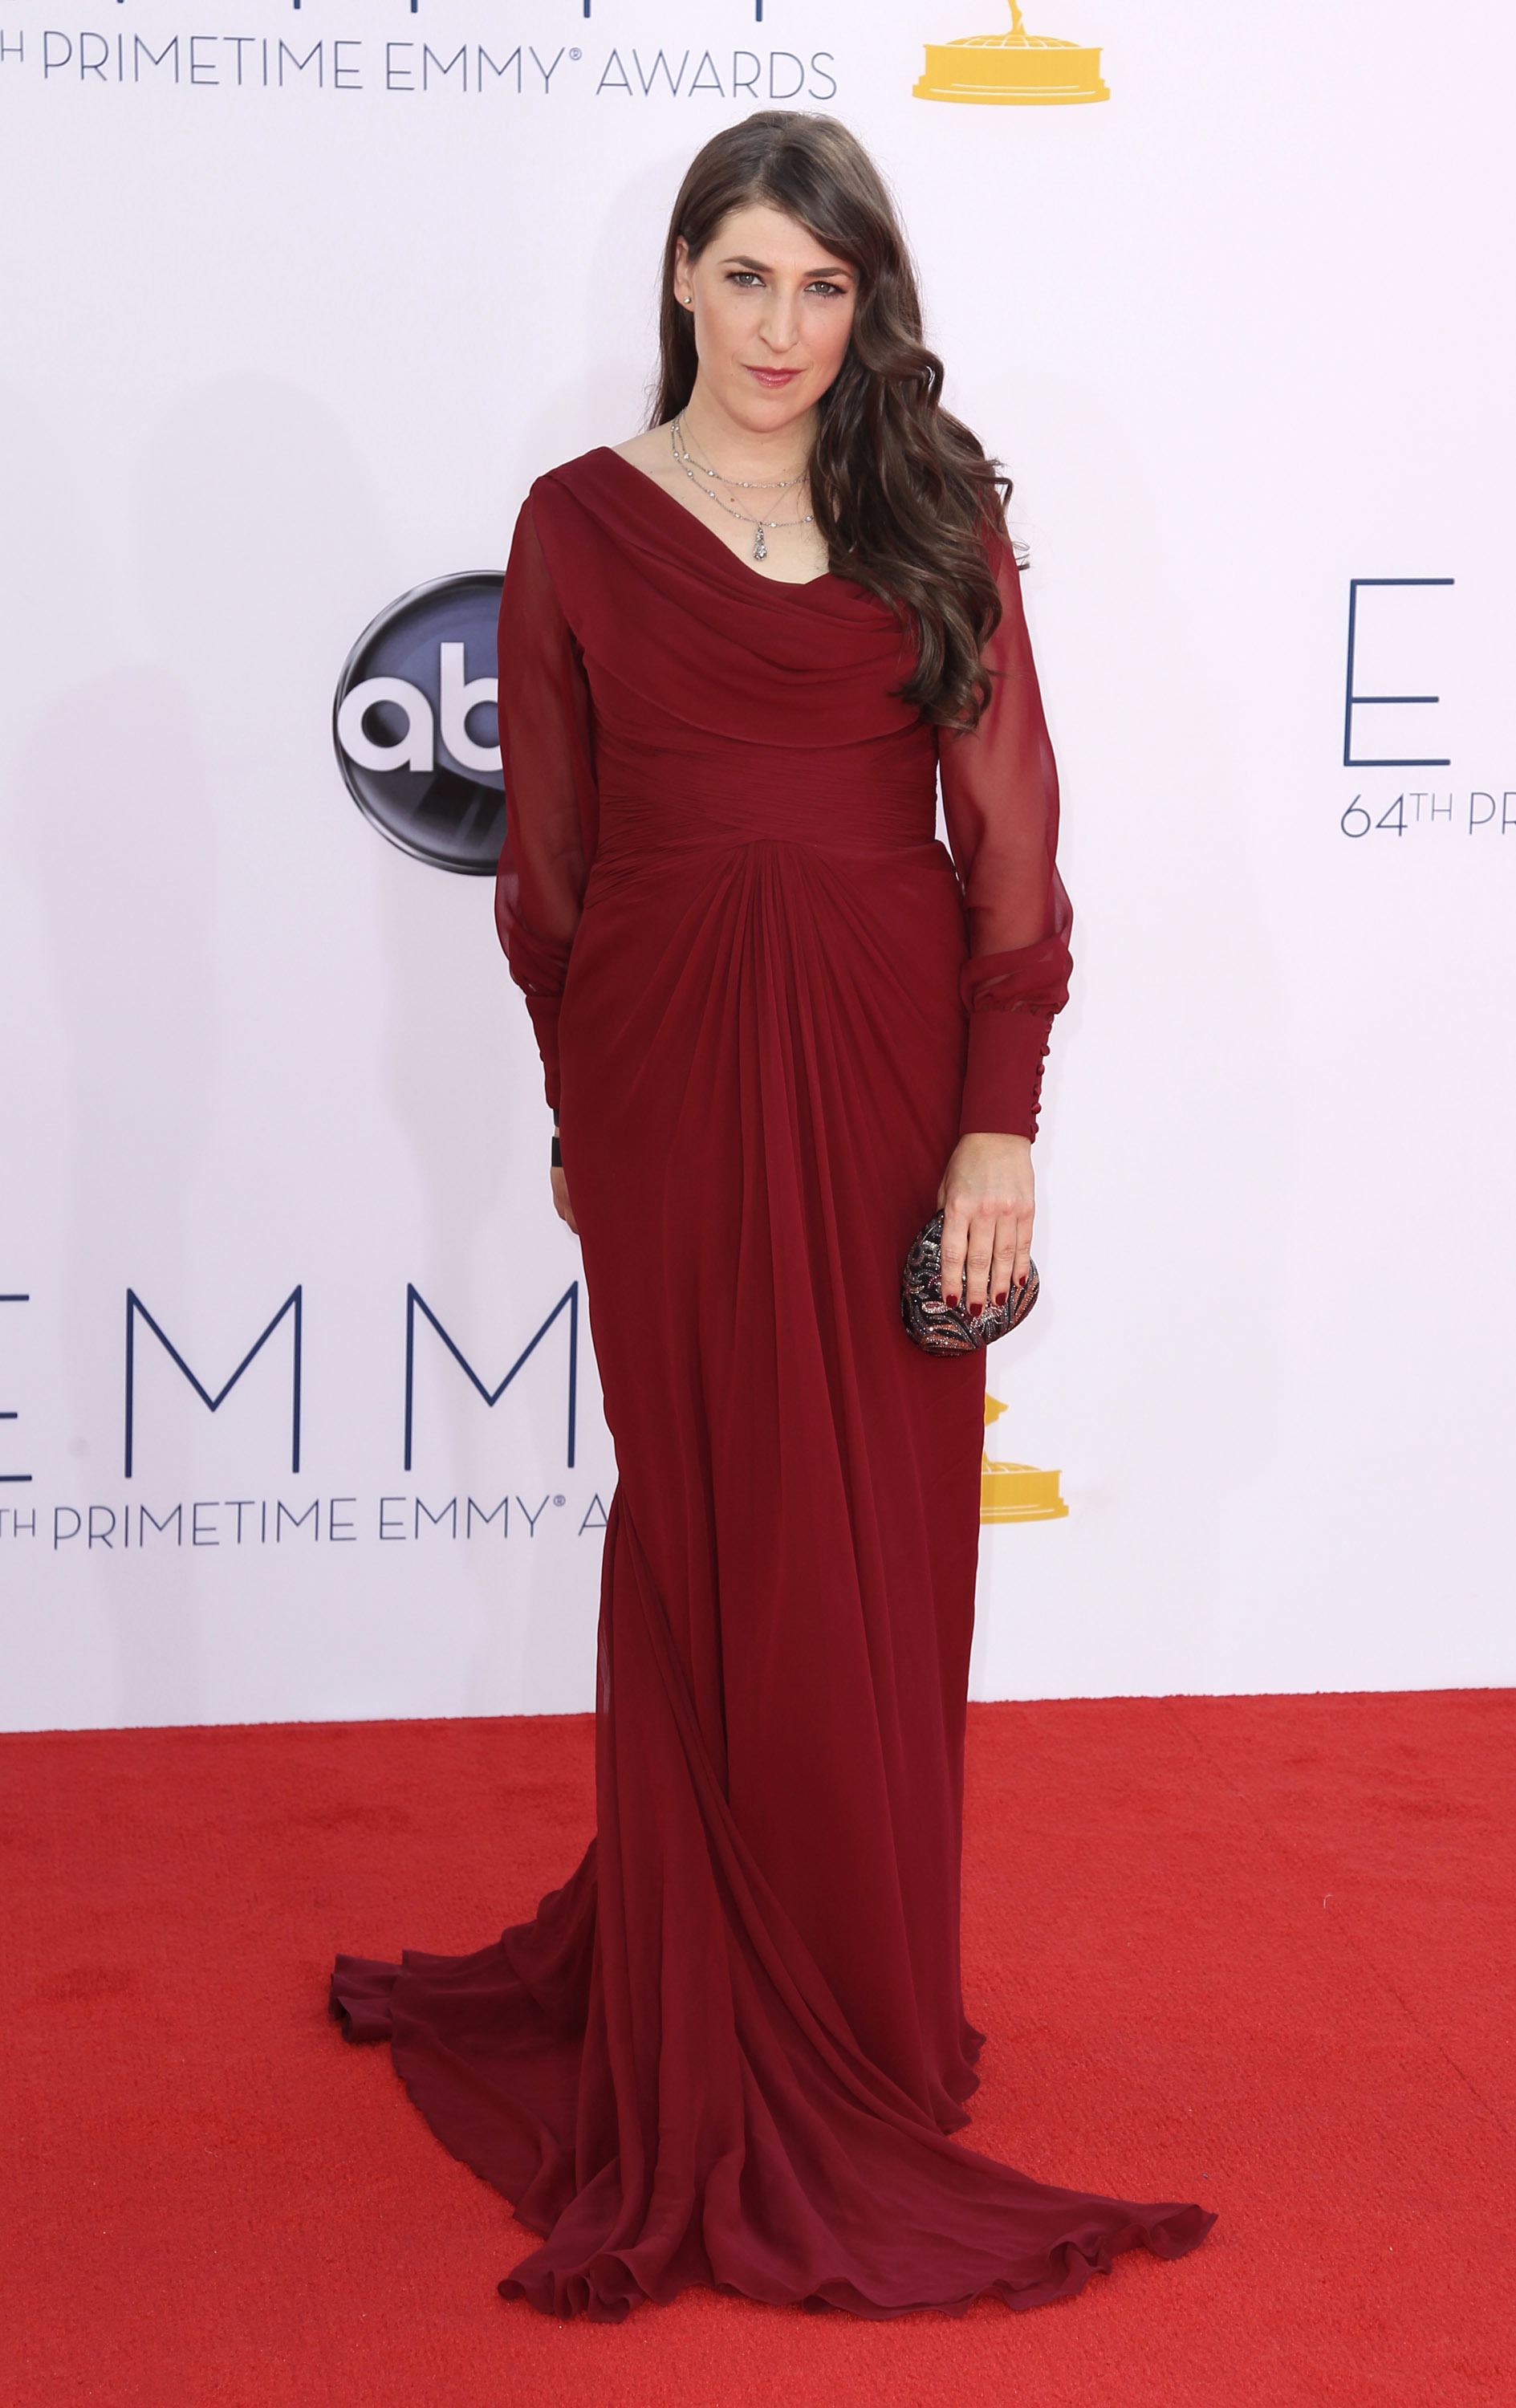 e829cea037 Fashion Hits and Misses: The 2012 Emmy Awards | Gallery | Wonderwall.com